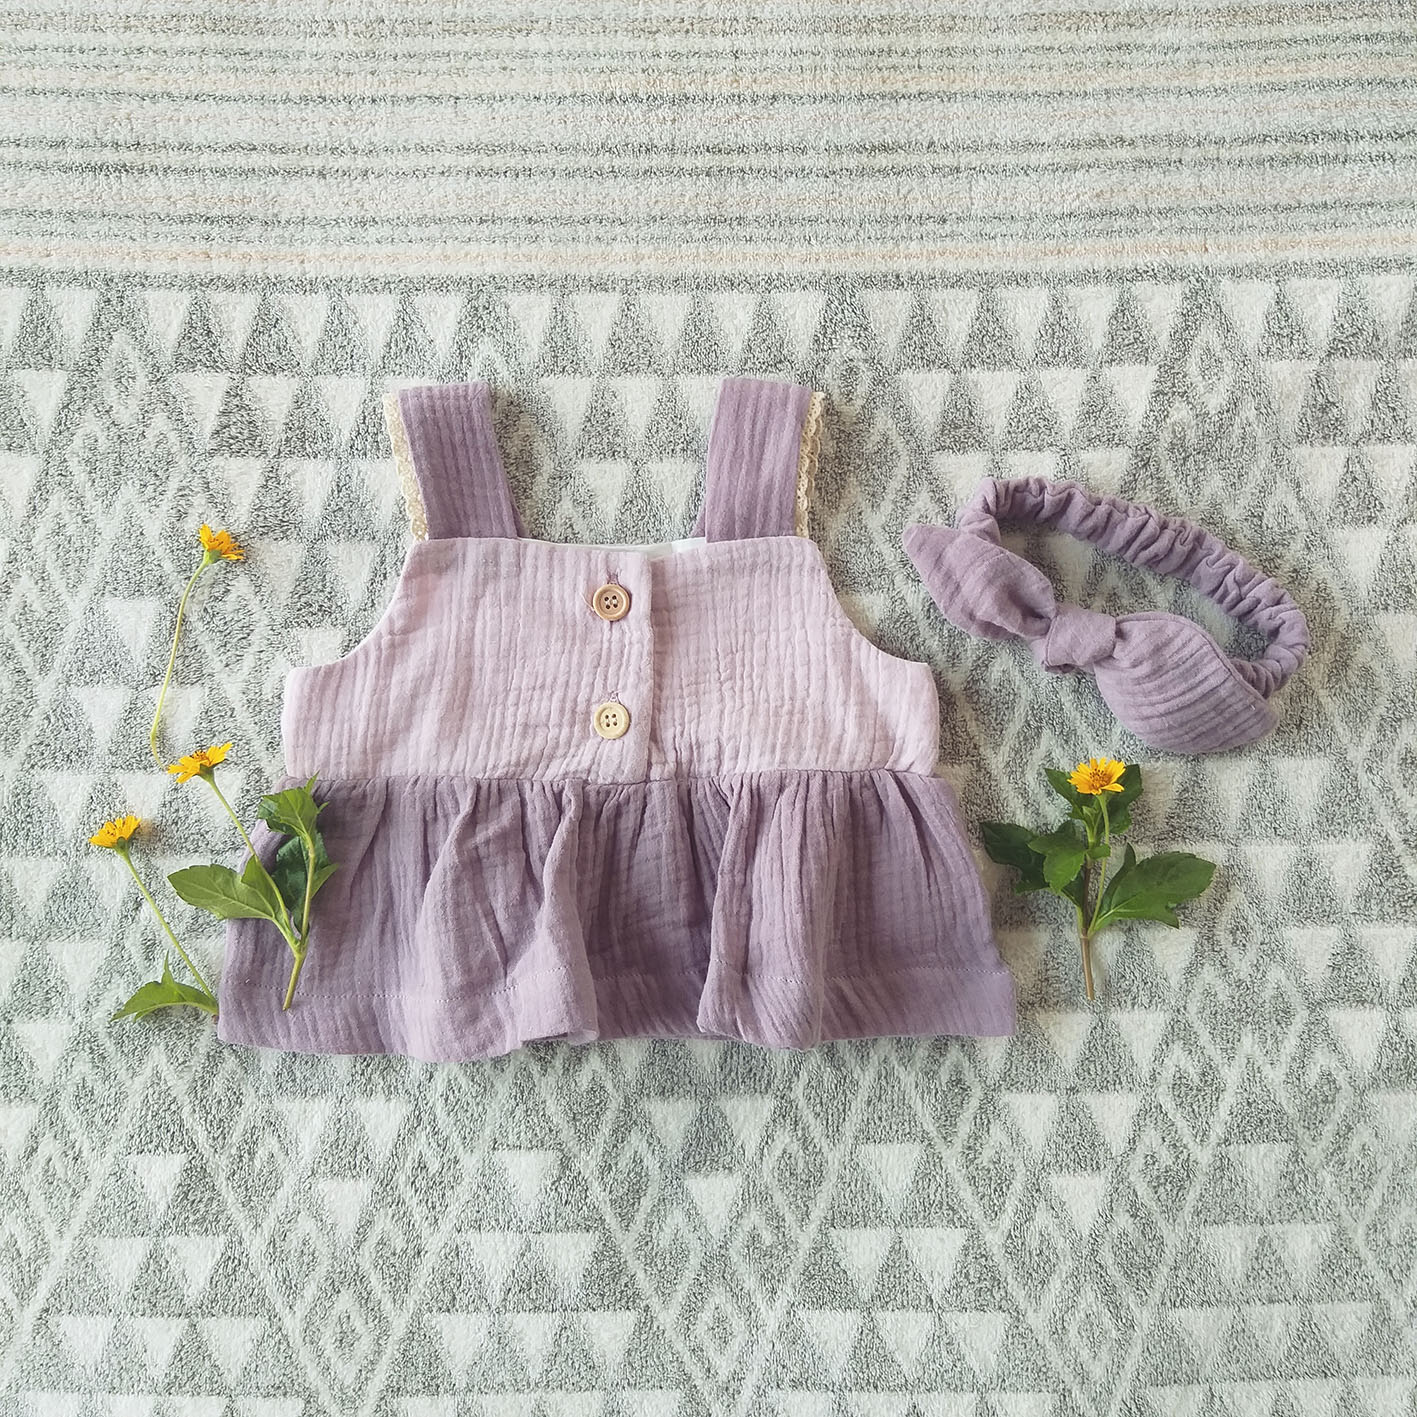 GIRLS TWO TONE BLOUSE / 100% COTTON CRINKLE LILAC & DUSTY PINK